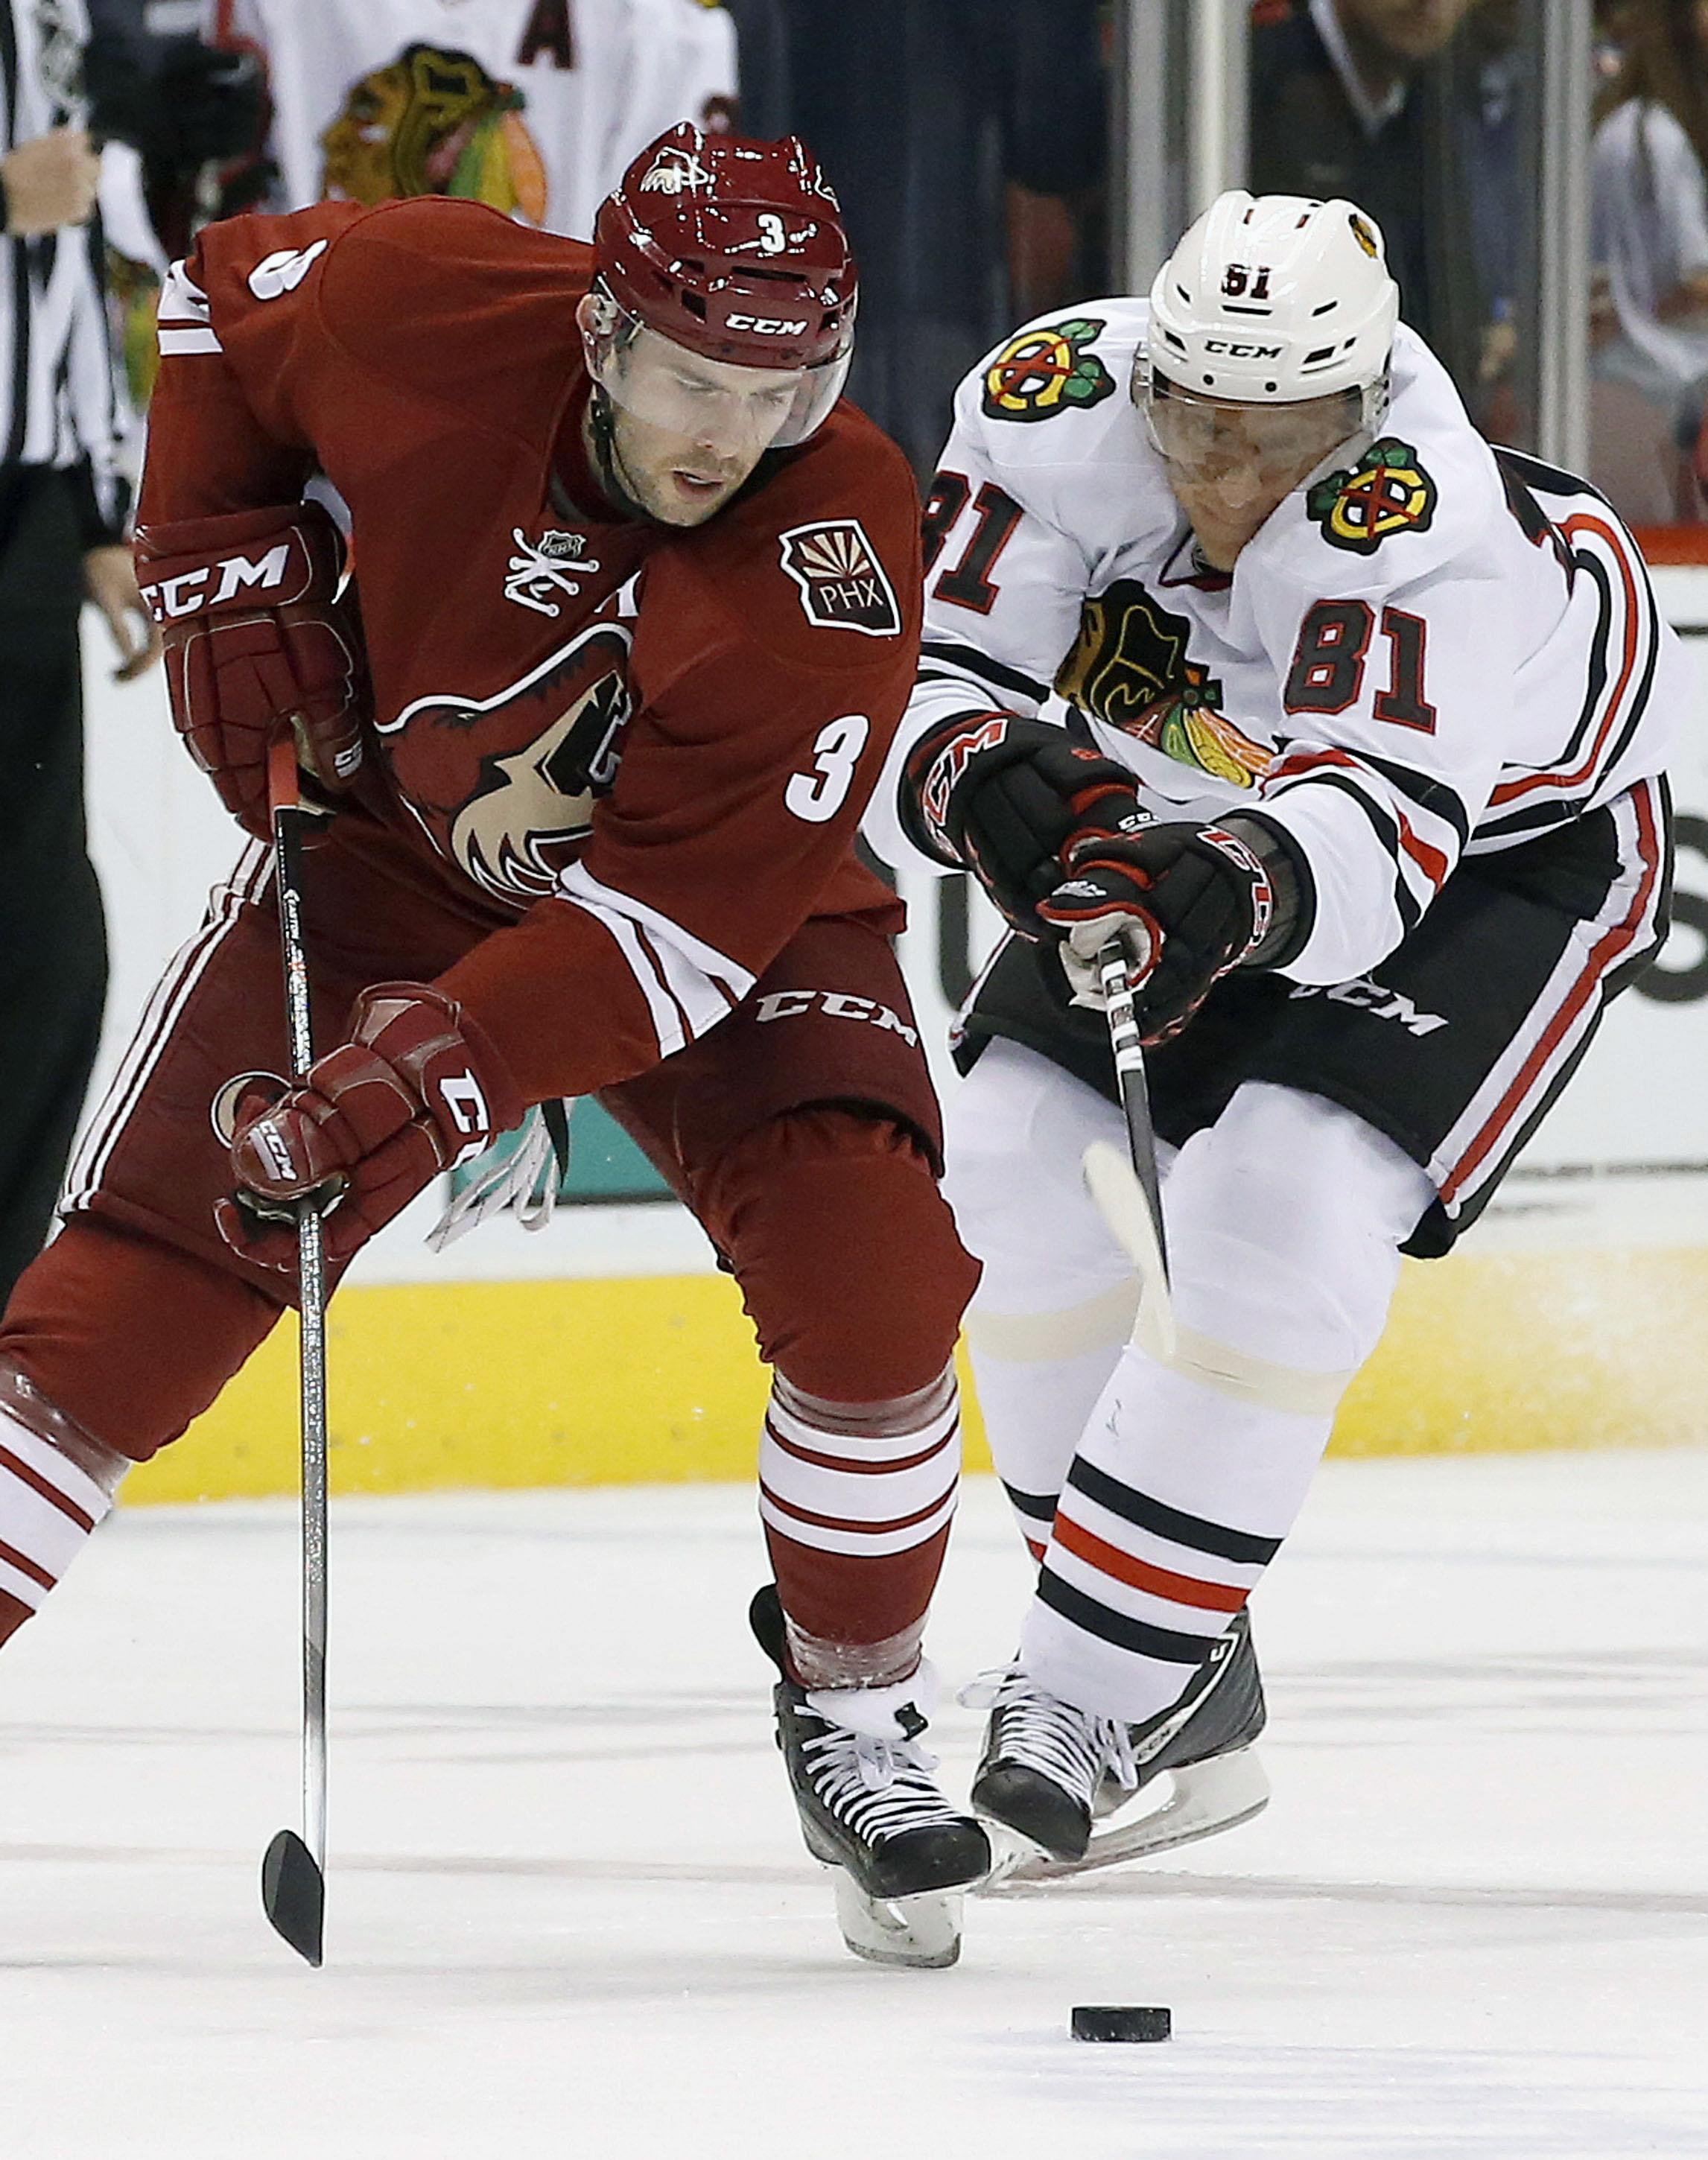 Smith and Coyotes shut down Blackhawks, 2-0